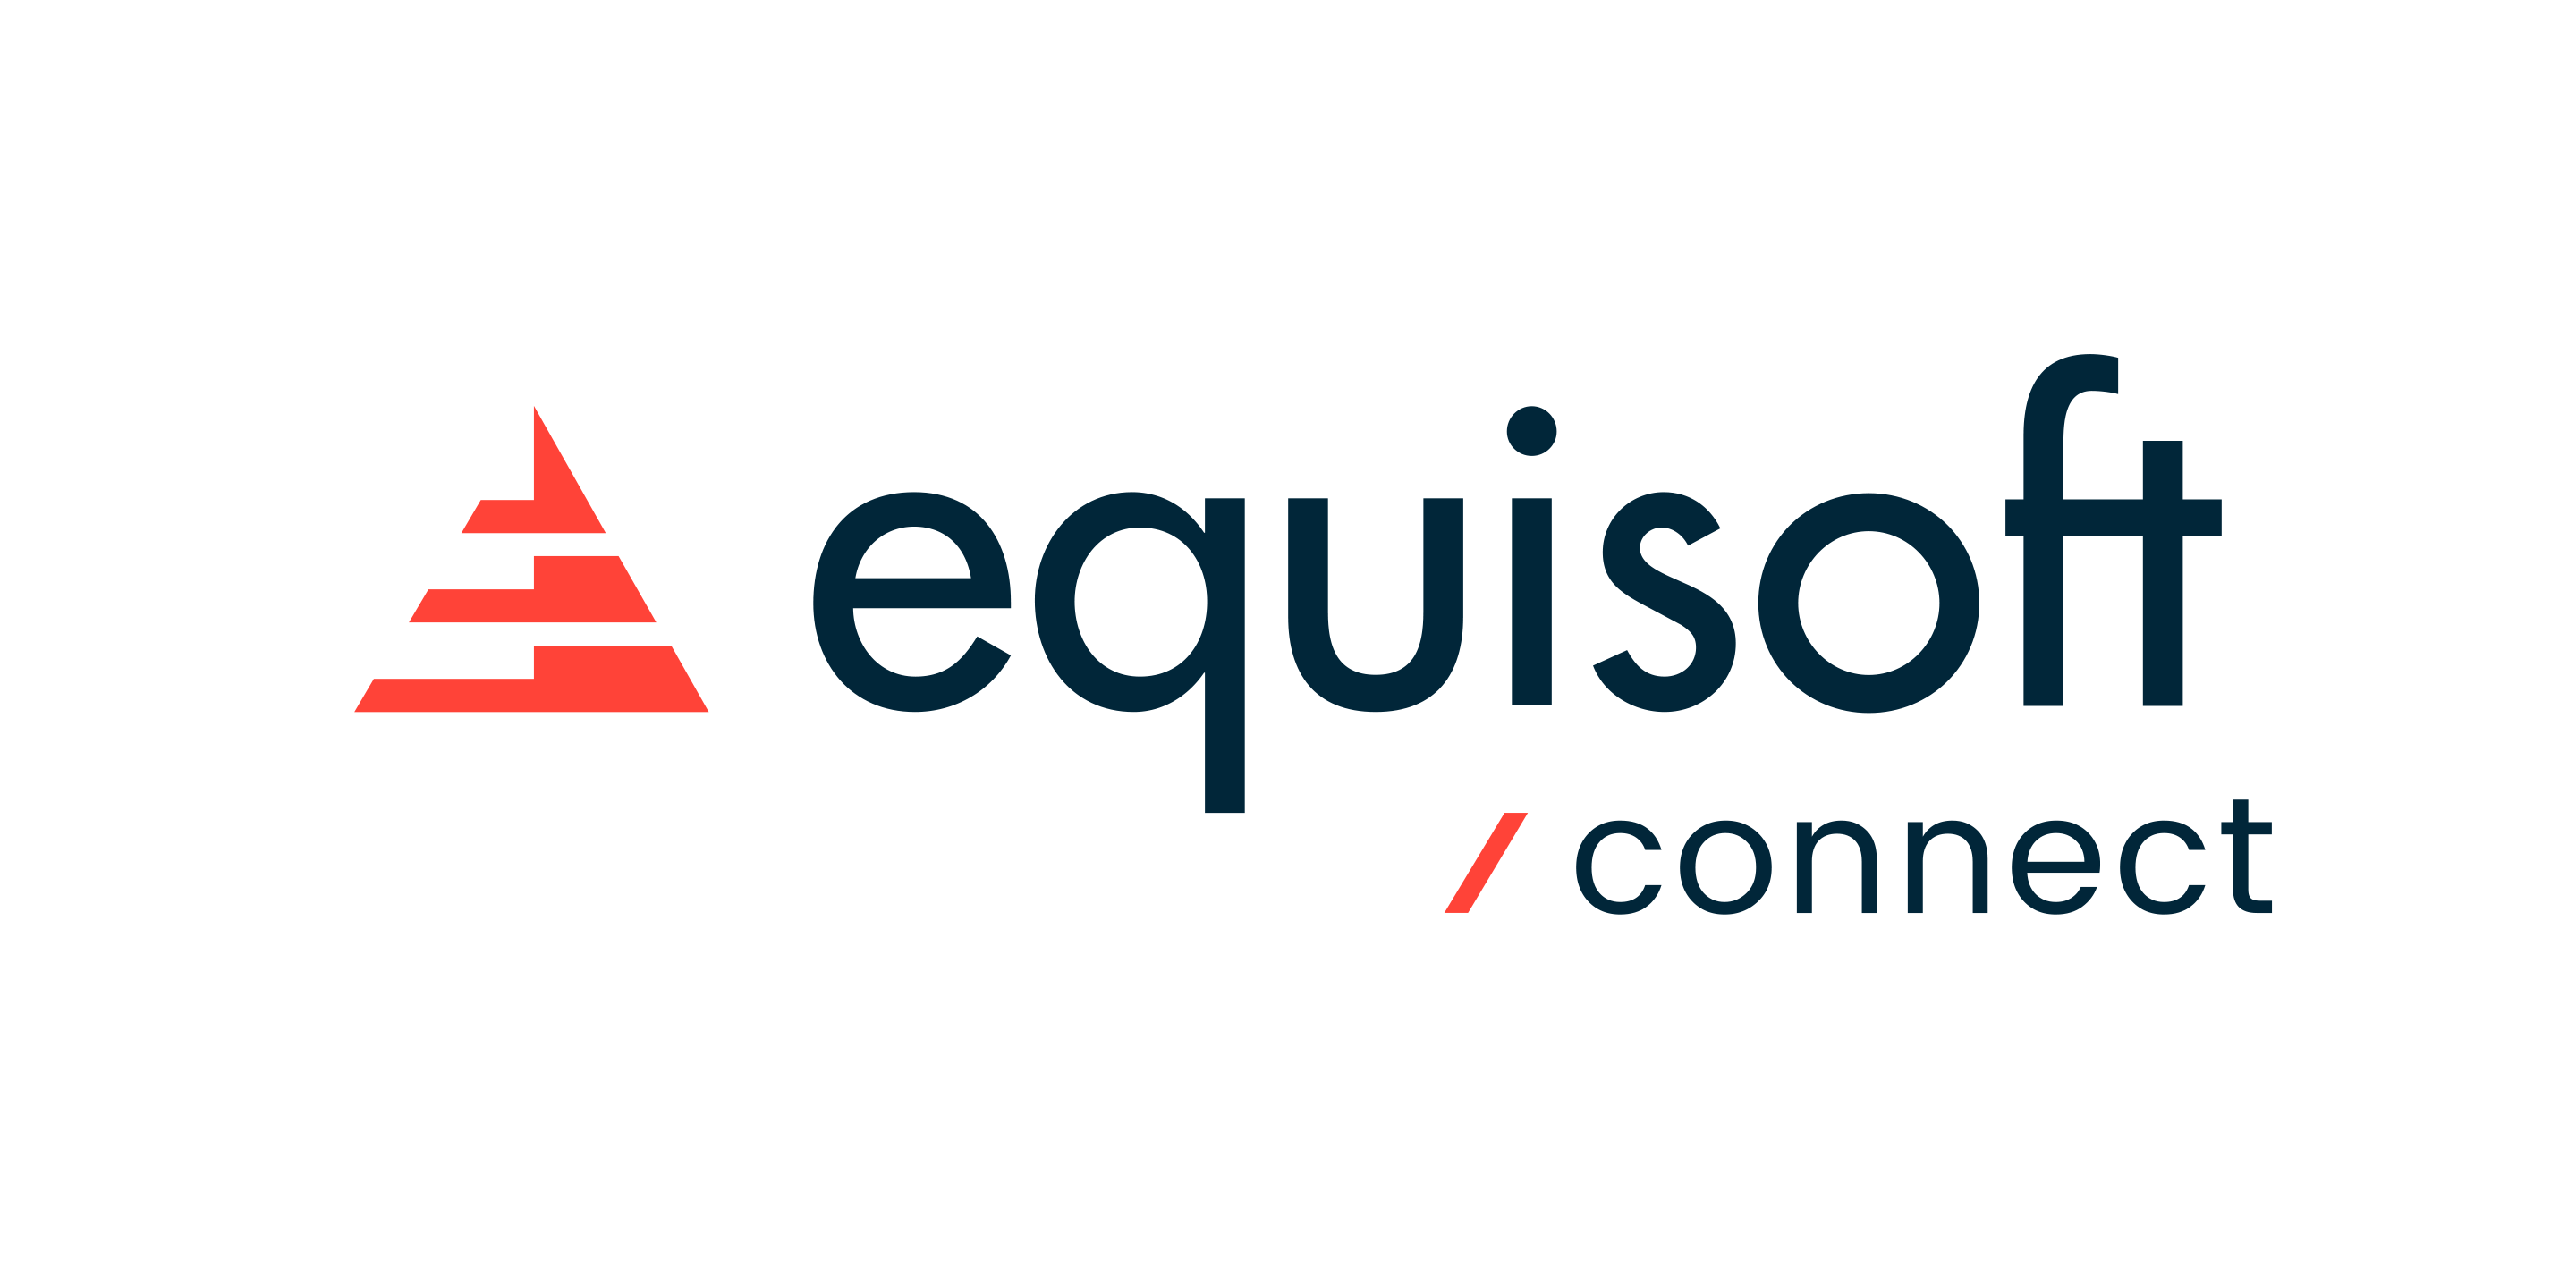 Equisoft/connect